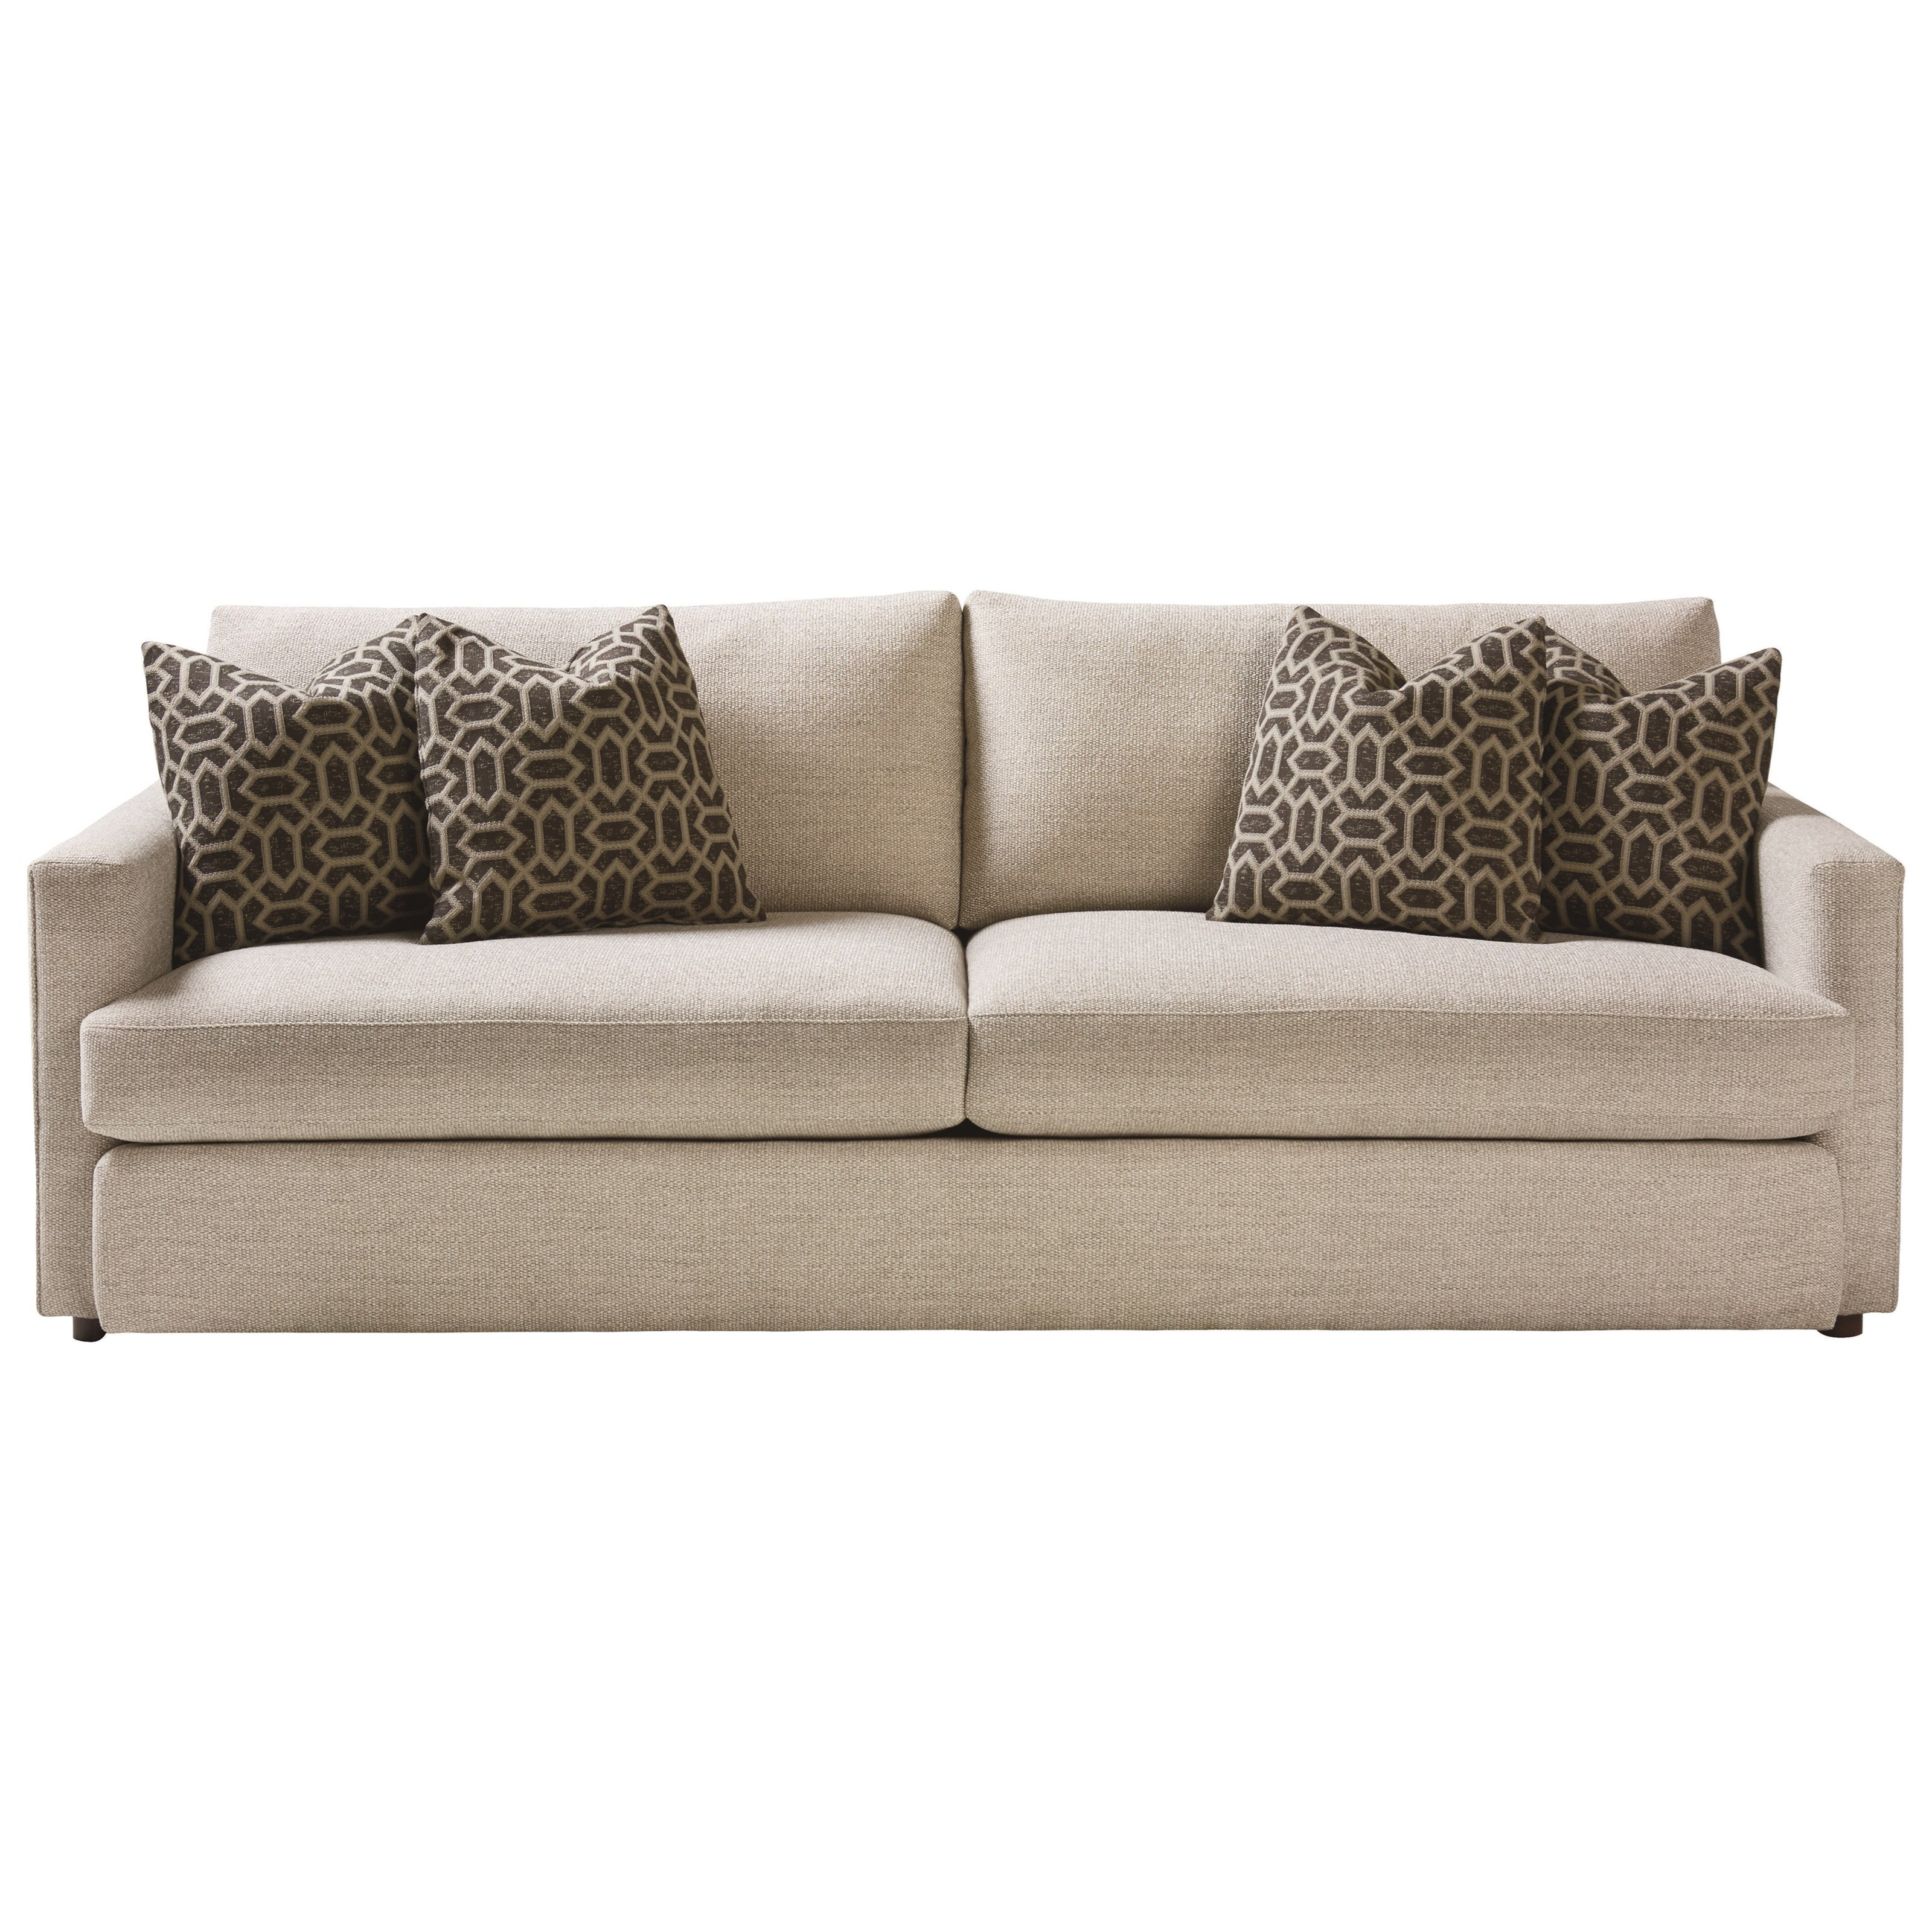 Allure Sofa by Bassett at Williams & Kay